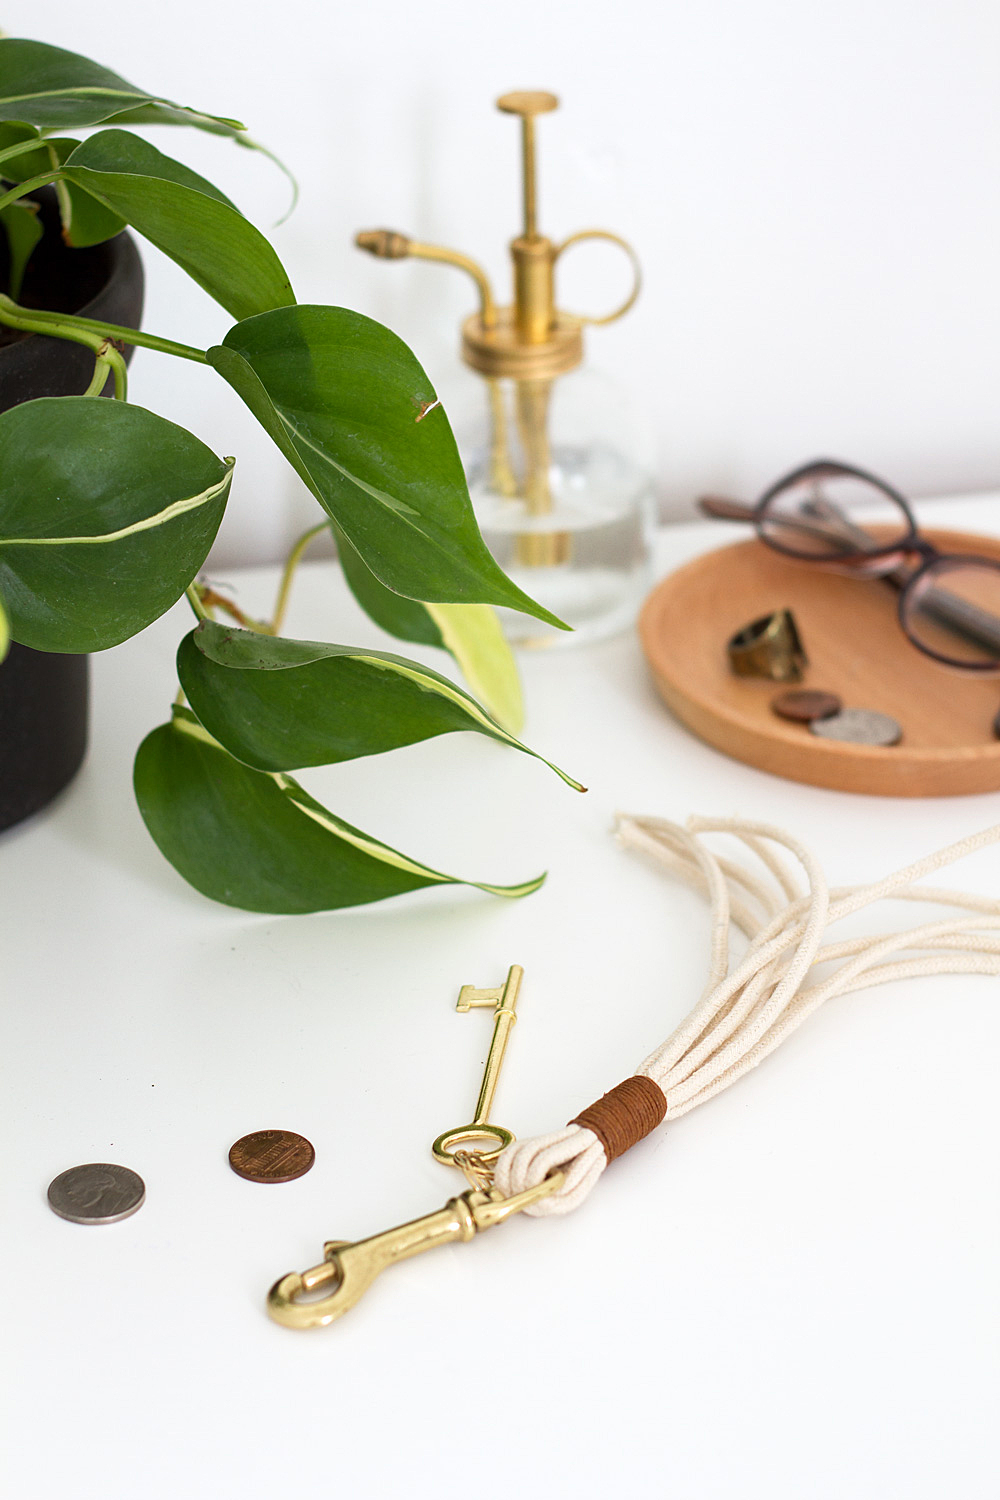 DIY Brass and Leather Keychain @idlehandsawake